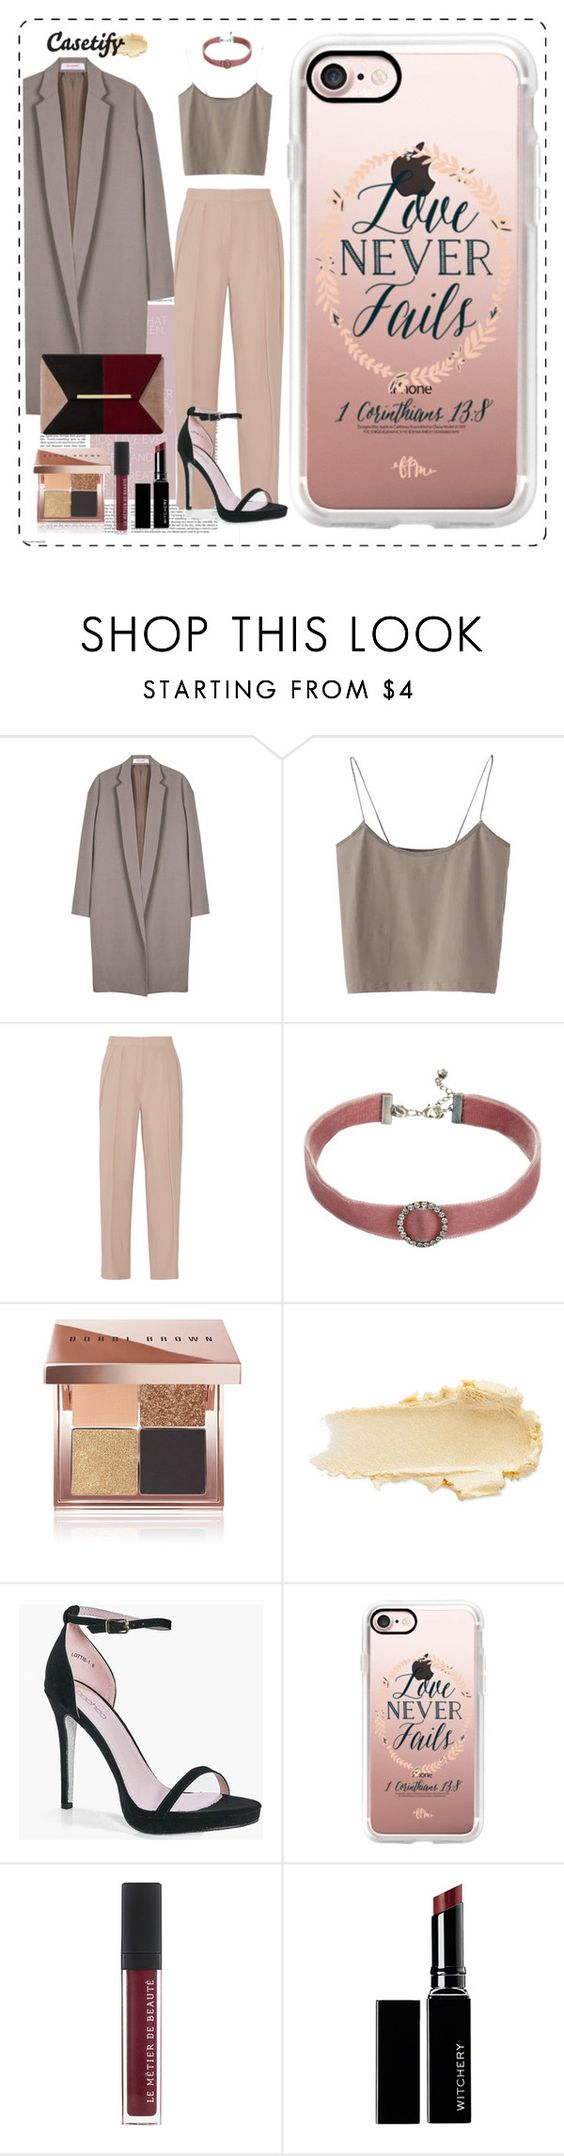 """""""Love never fails 💕"""" by casetify ❤ liked on Polyvore featuring Organic by John Patrick, By Malene Birger, DANNIJO, Bobbi Brown Cosmetics, Boohoo, Casetify, Witchery and Dune"""